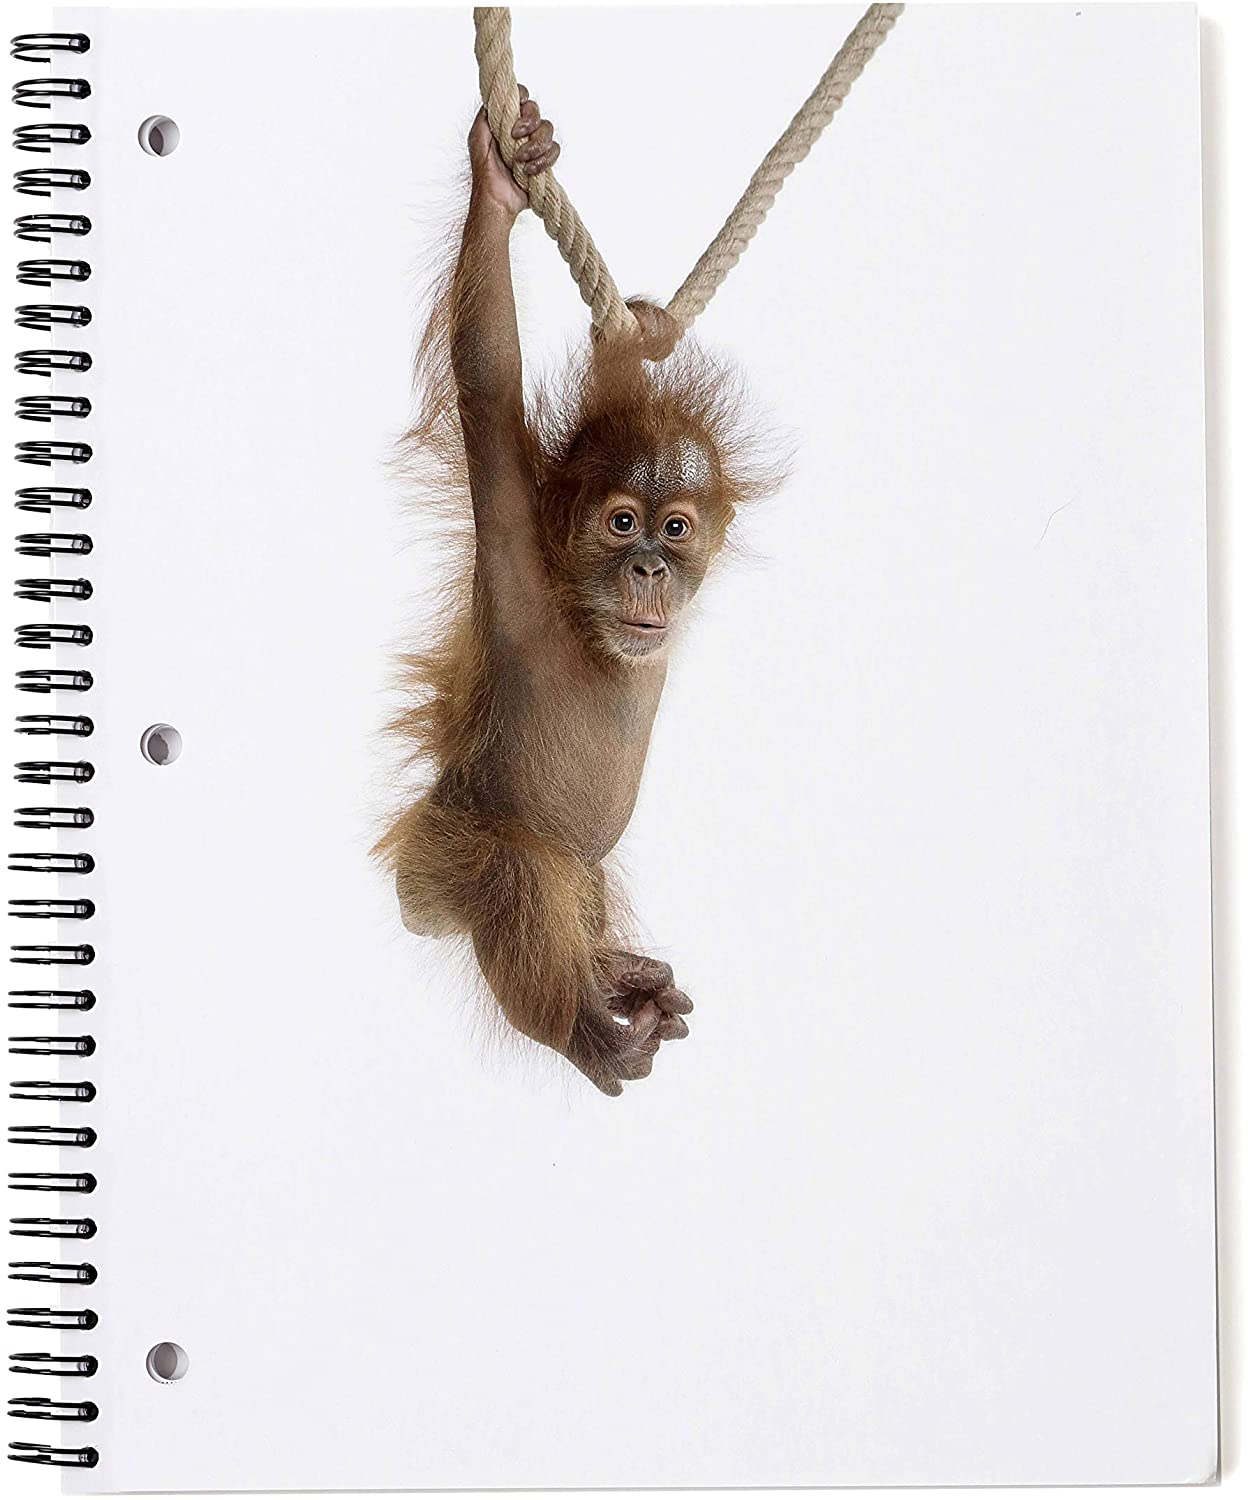 Monkey Spiral Notebook - 1 Subject, Wide Rule, 70 Sheets - Glossy Cover with Quality Paper - 6 Cute, Modern, Fun Animal Note Books Available